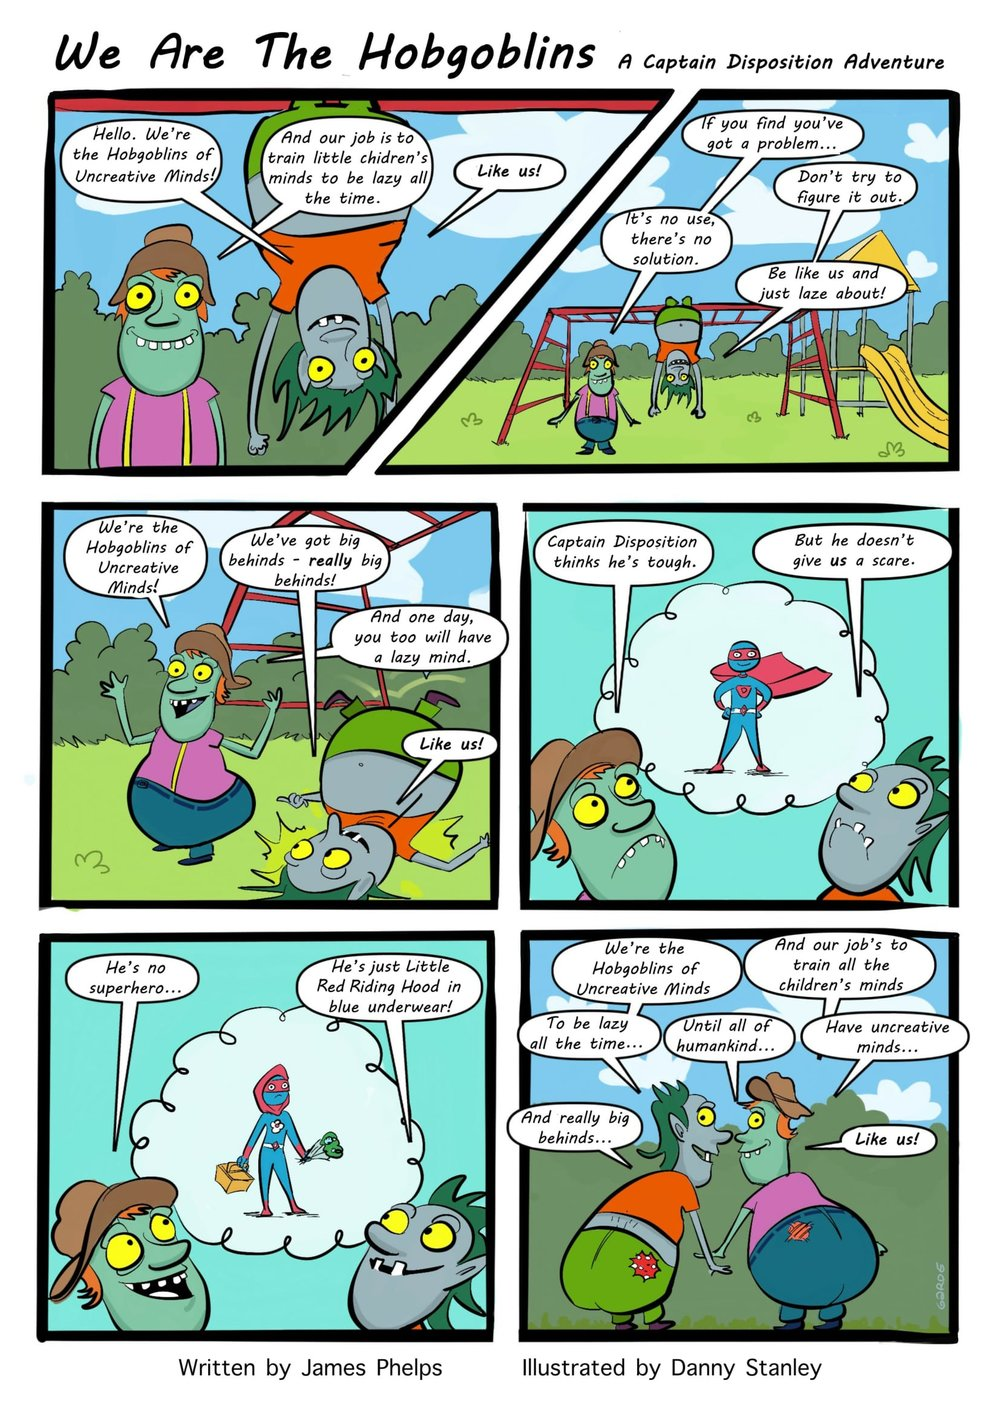 Comic - Captain Disposition - 8 March 2017-06.jpg